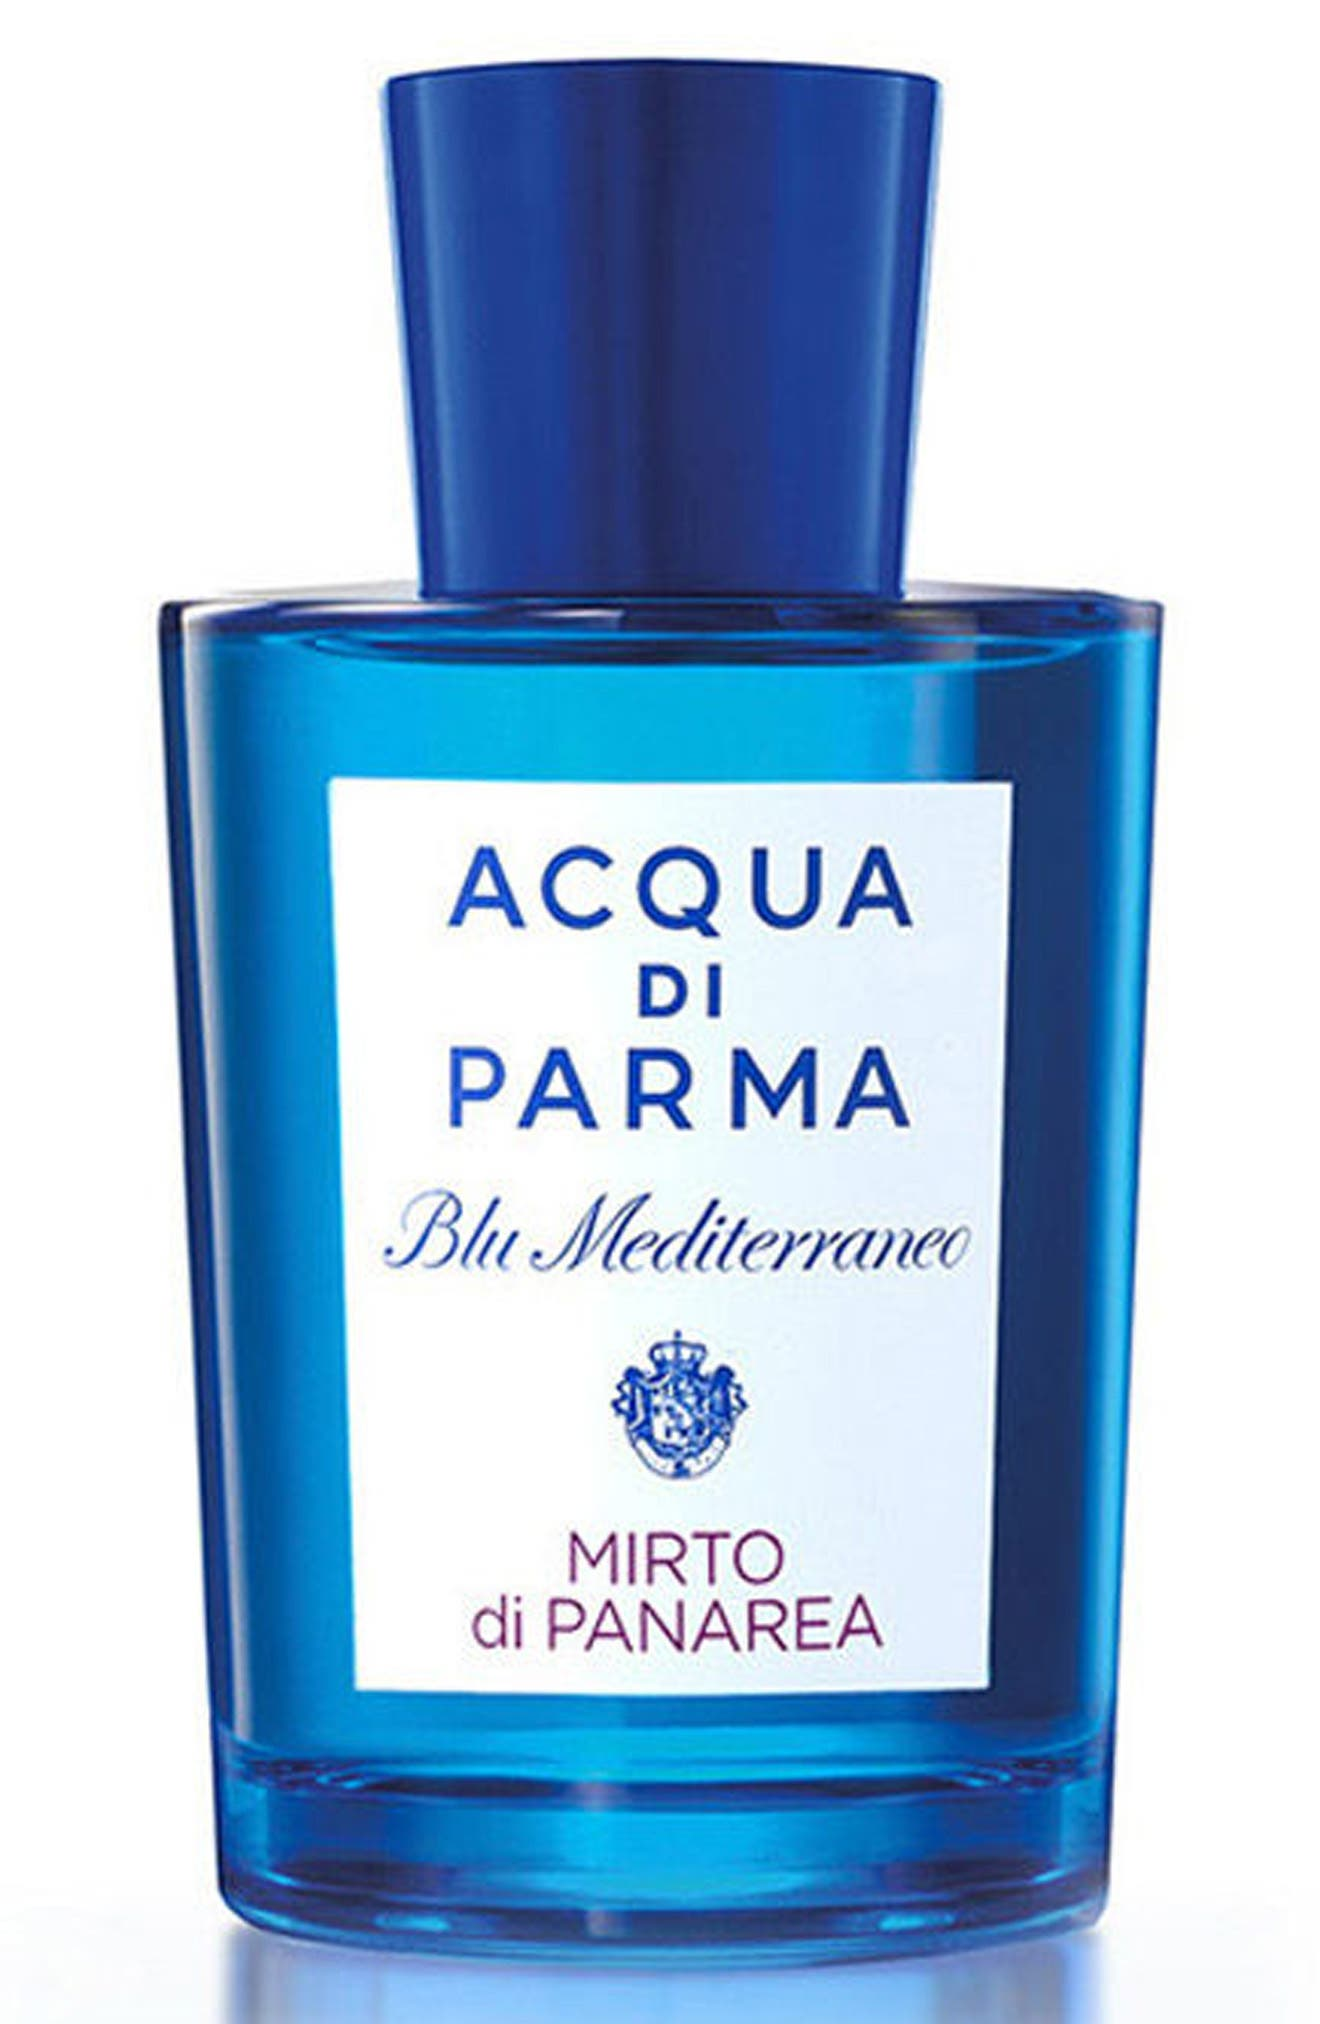 Alternate Image 1 Selected - Acqua di Parma 'Blu Mediterraneo' Mirto di Panarea Eau de Toilette Spray